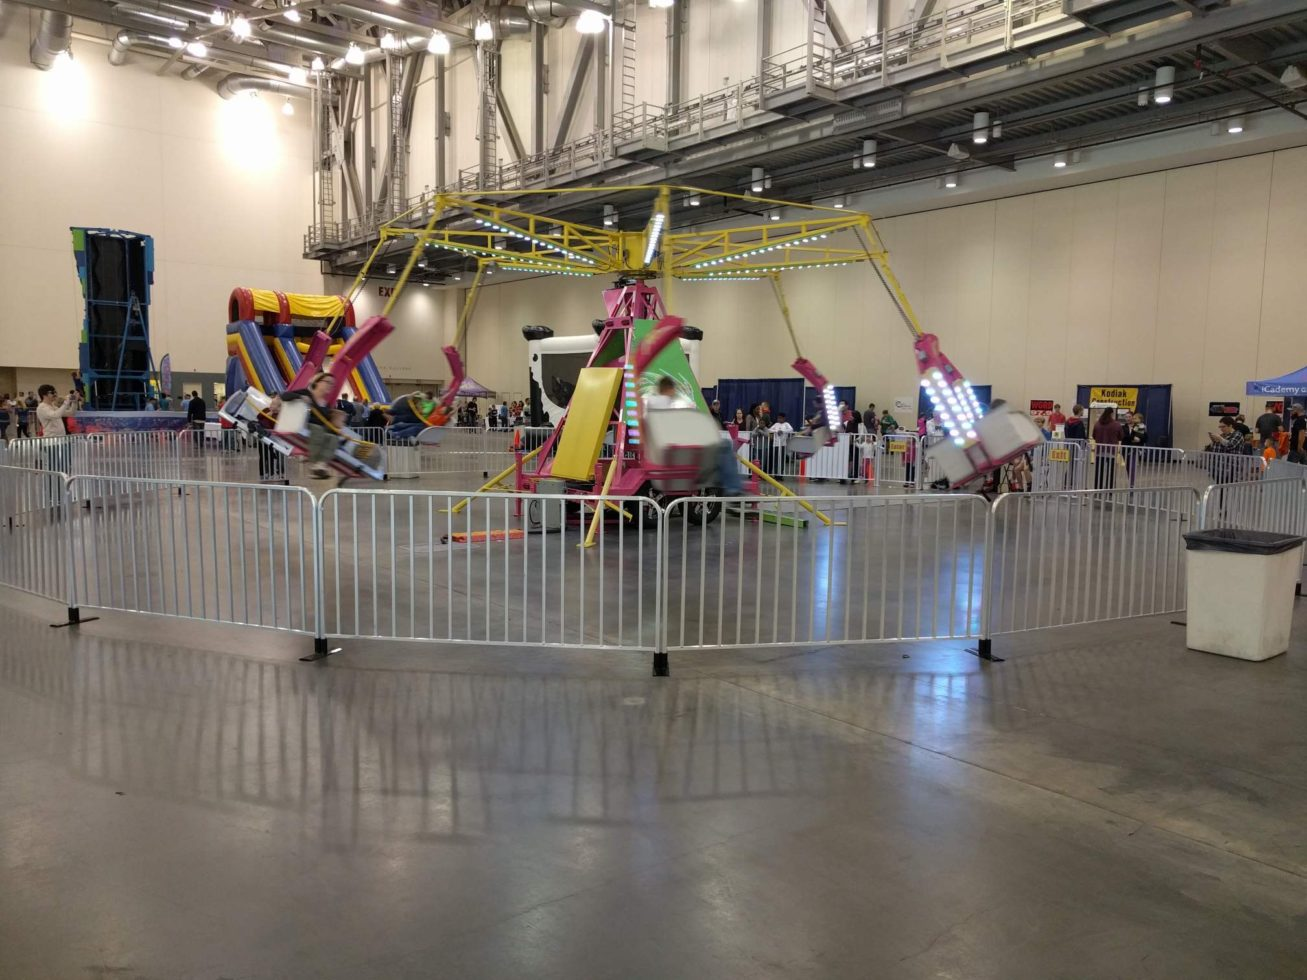 ballistic carnival ride inside convention center